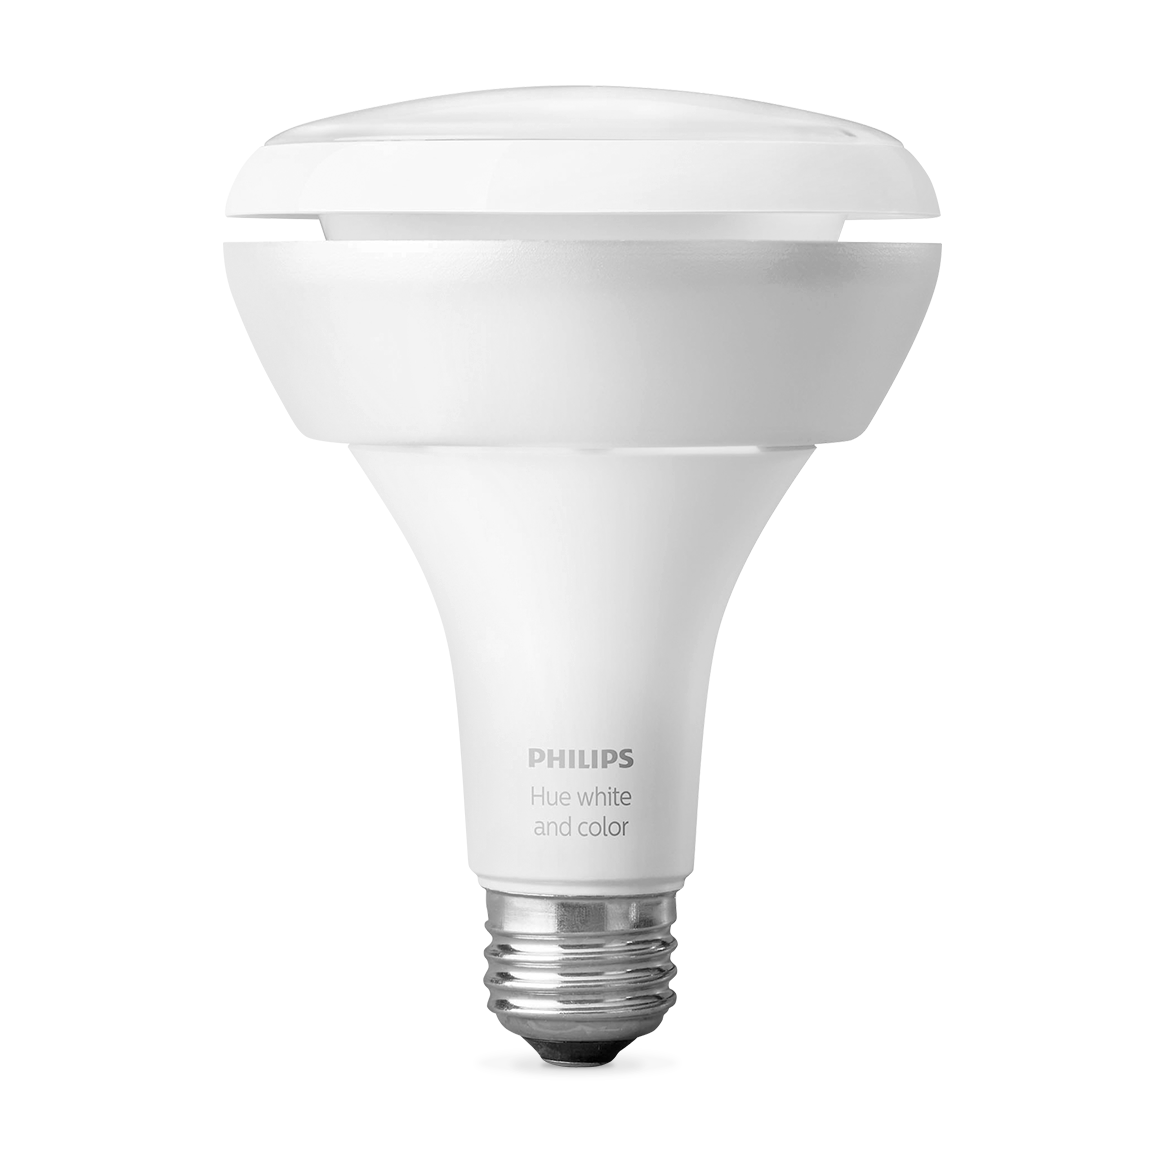 Smartthings philips hue white and color ambiance led light bulb br30 aloadofball Gallery